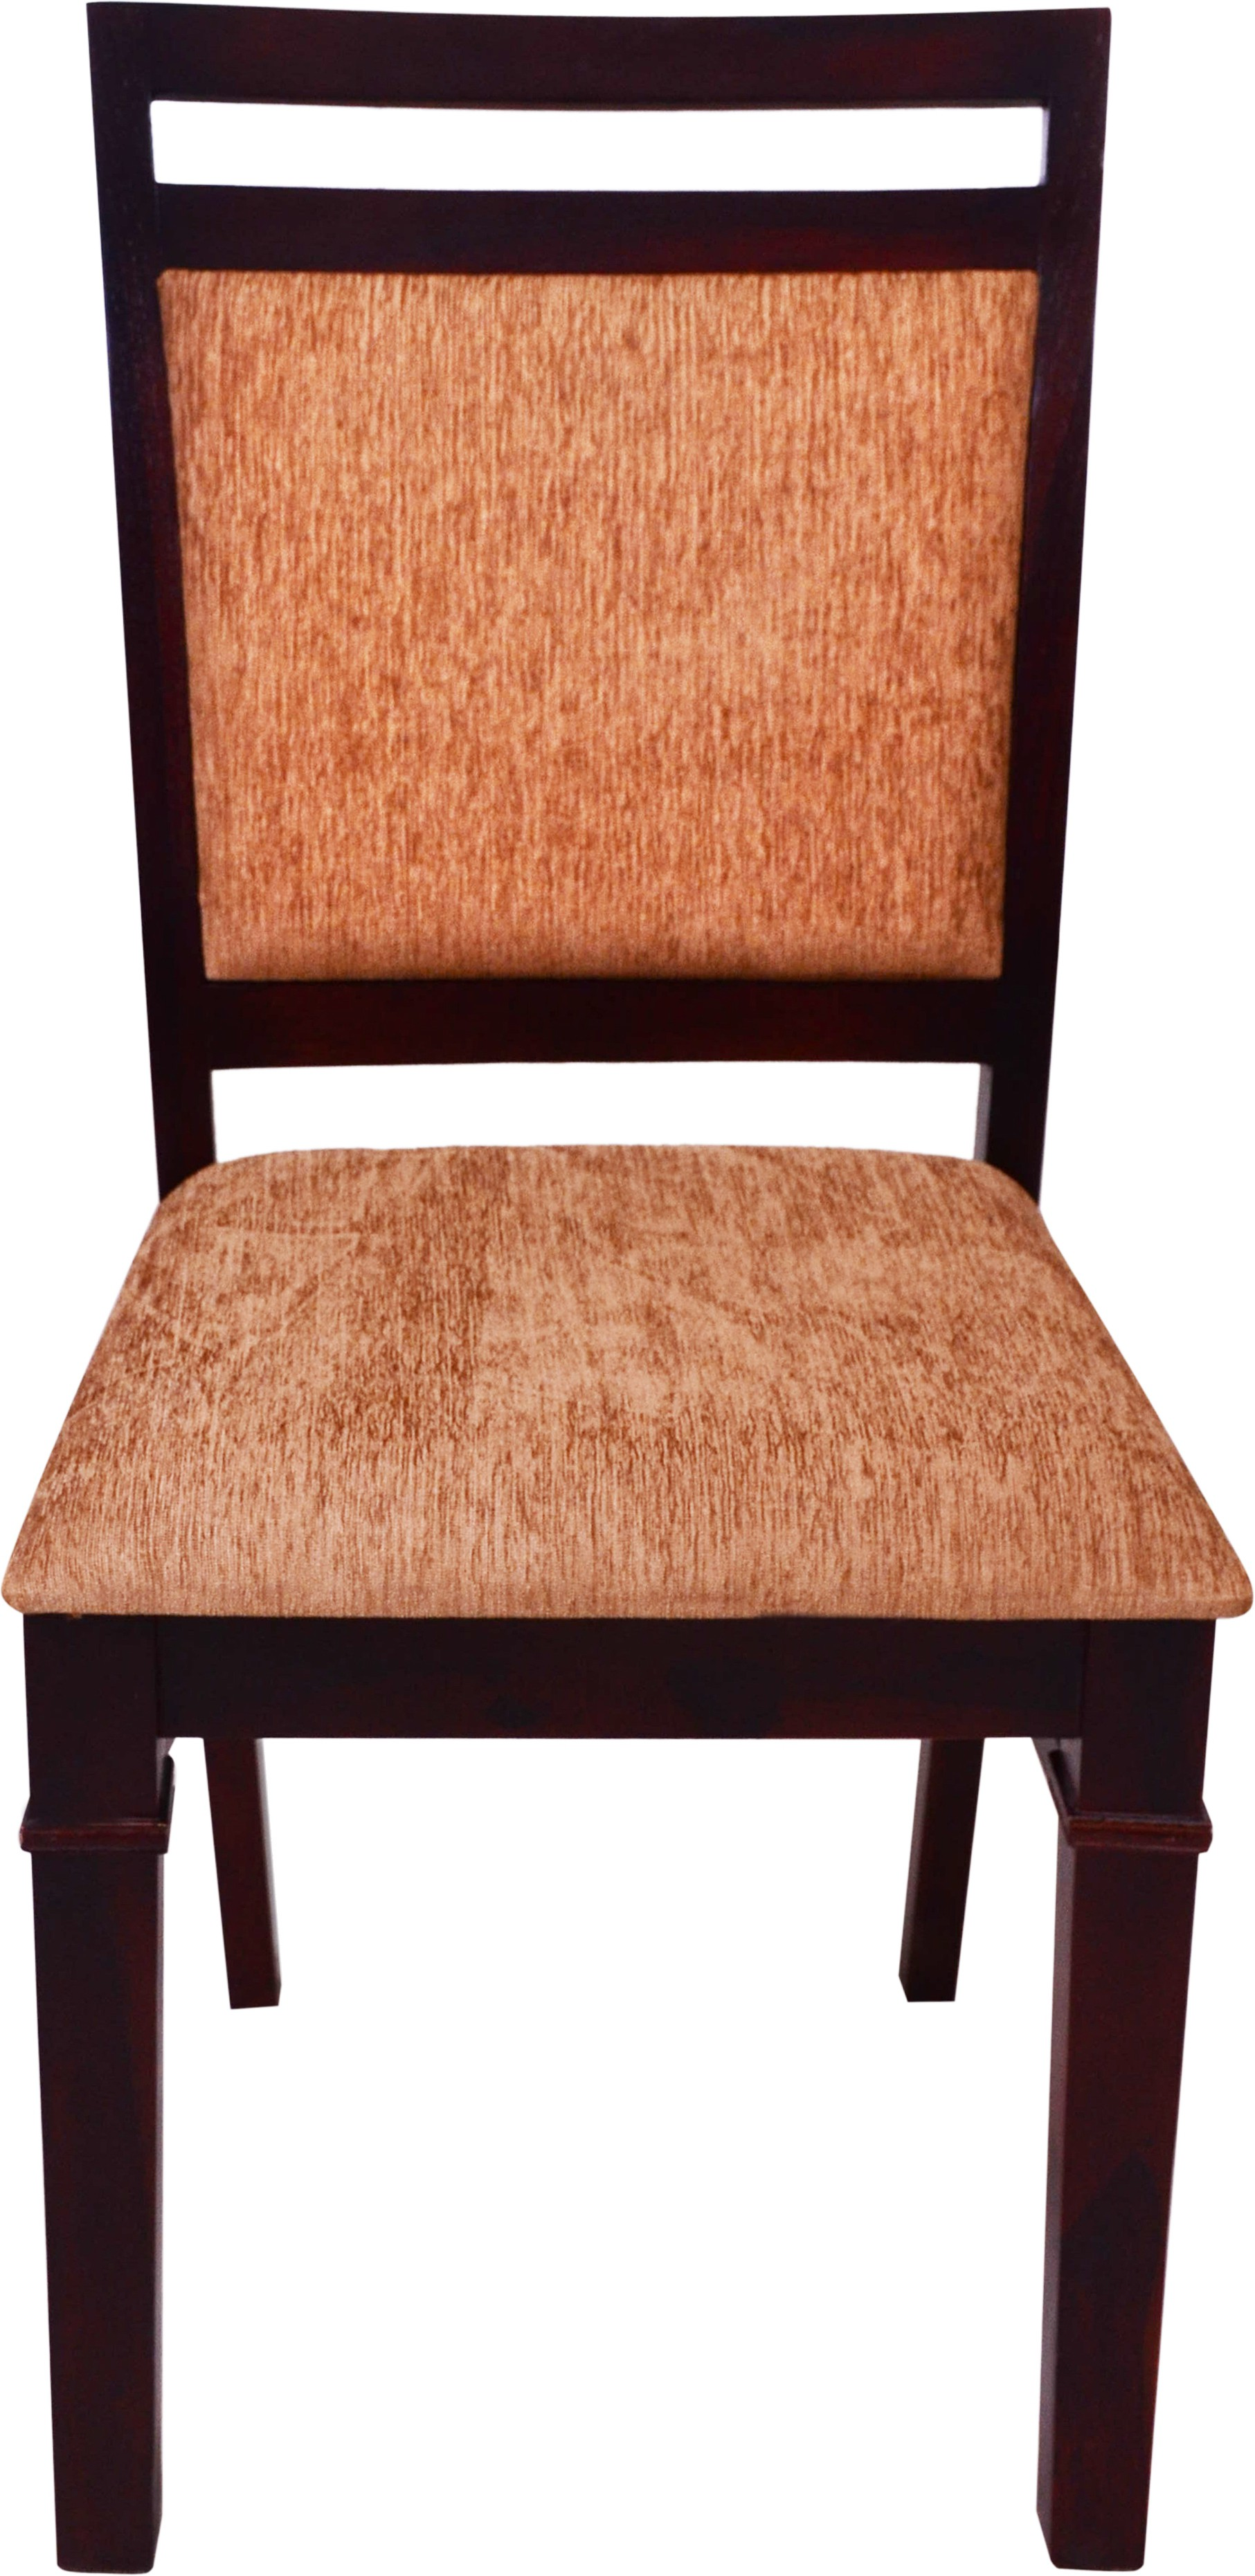 Nesta Furniture Scholar Solid Wood Dining Chair